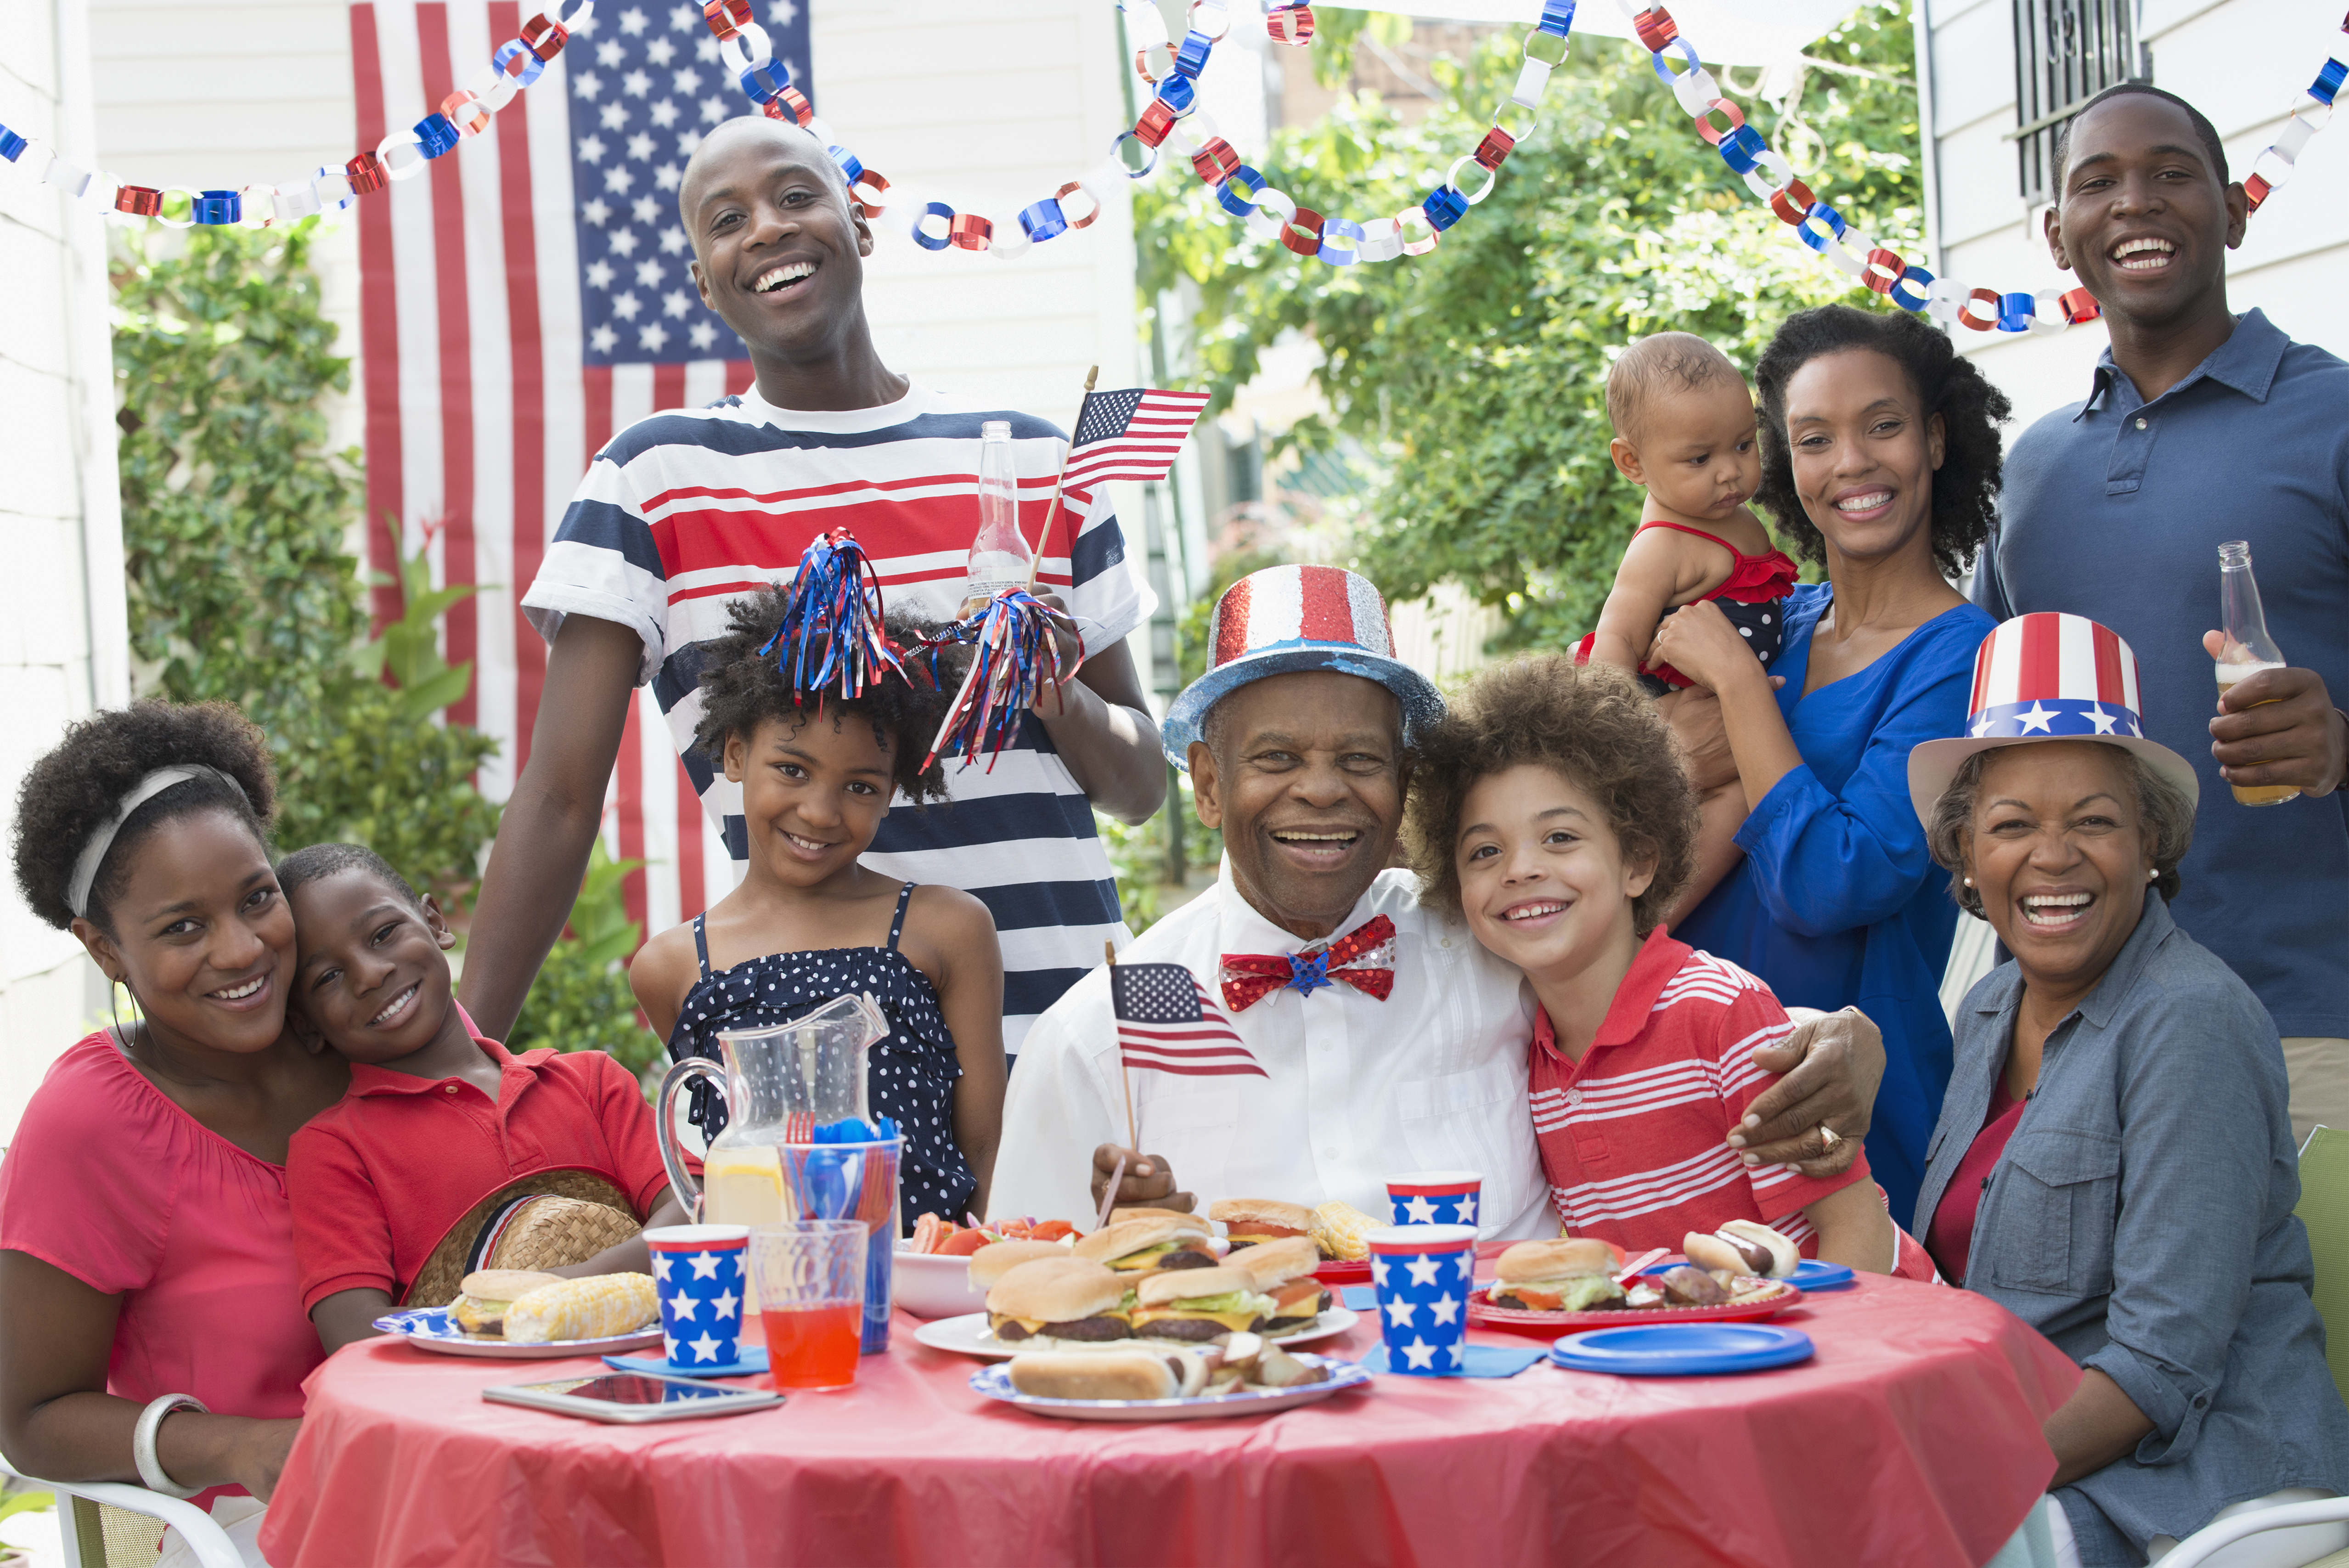 Multi-generation family smiling at Fourth of July barbecue